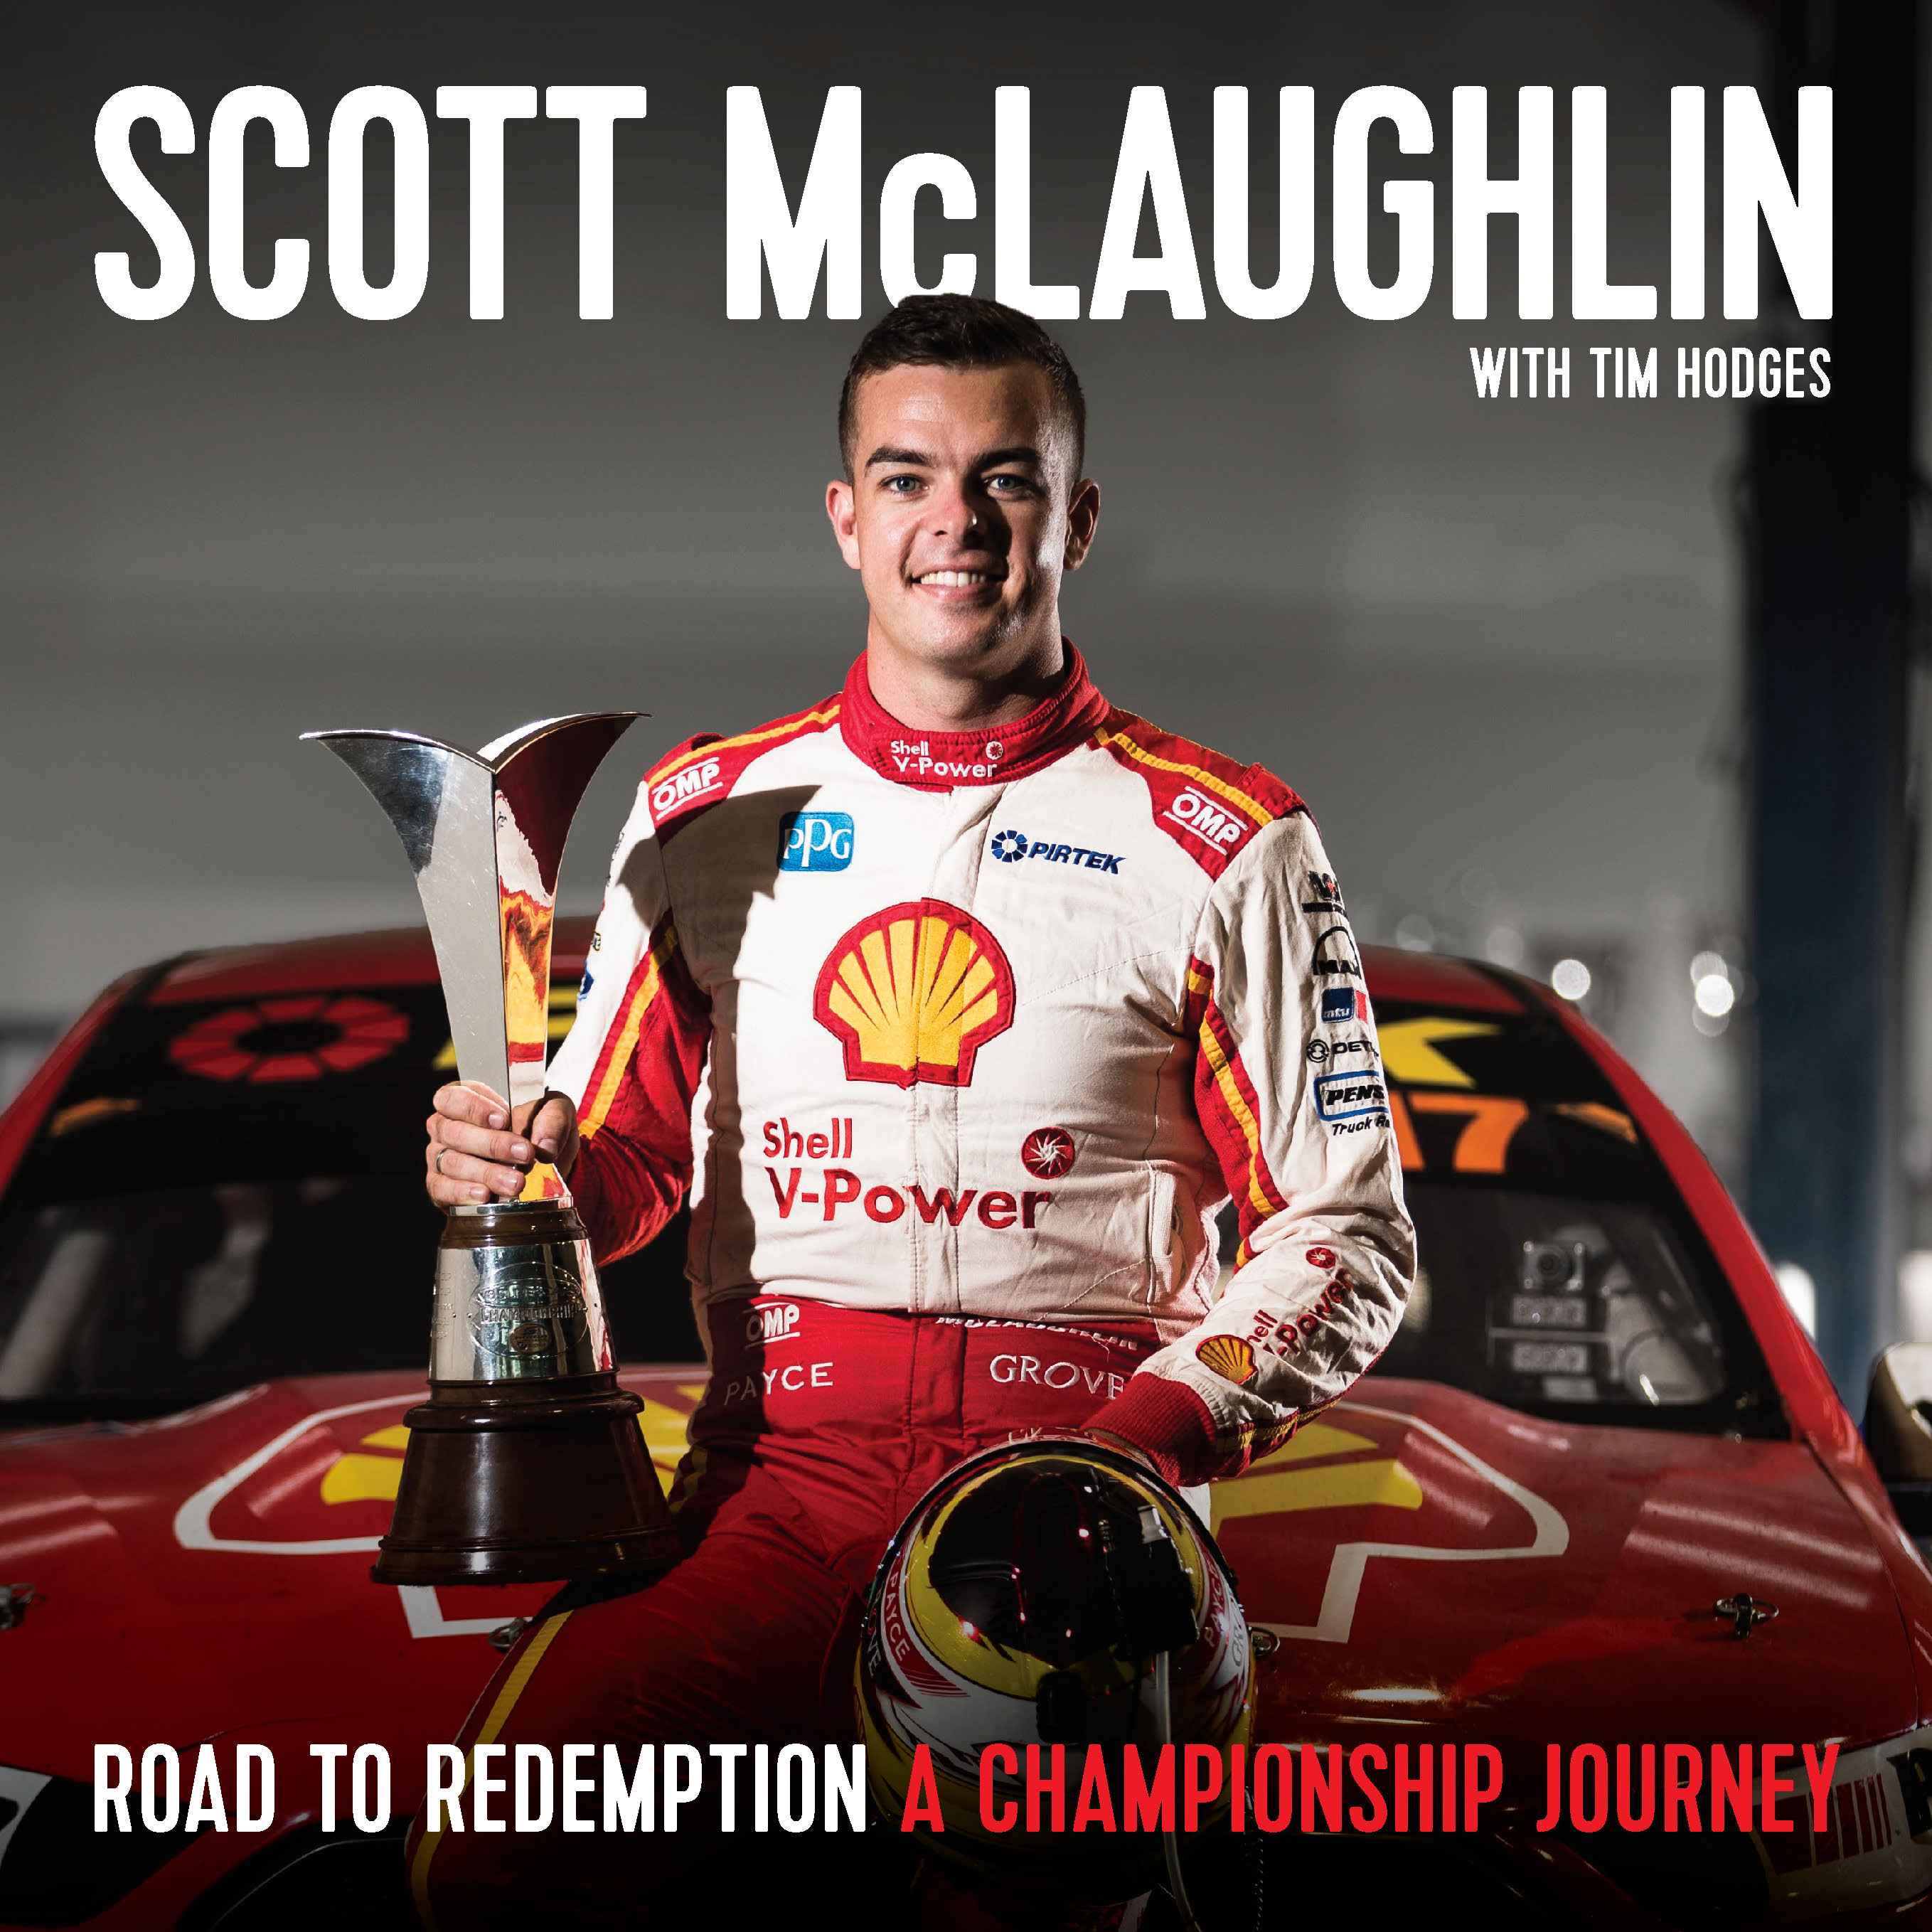 Dymocks Literary Club Event: Supercar Champion Scott McLaughin Signing In Store